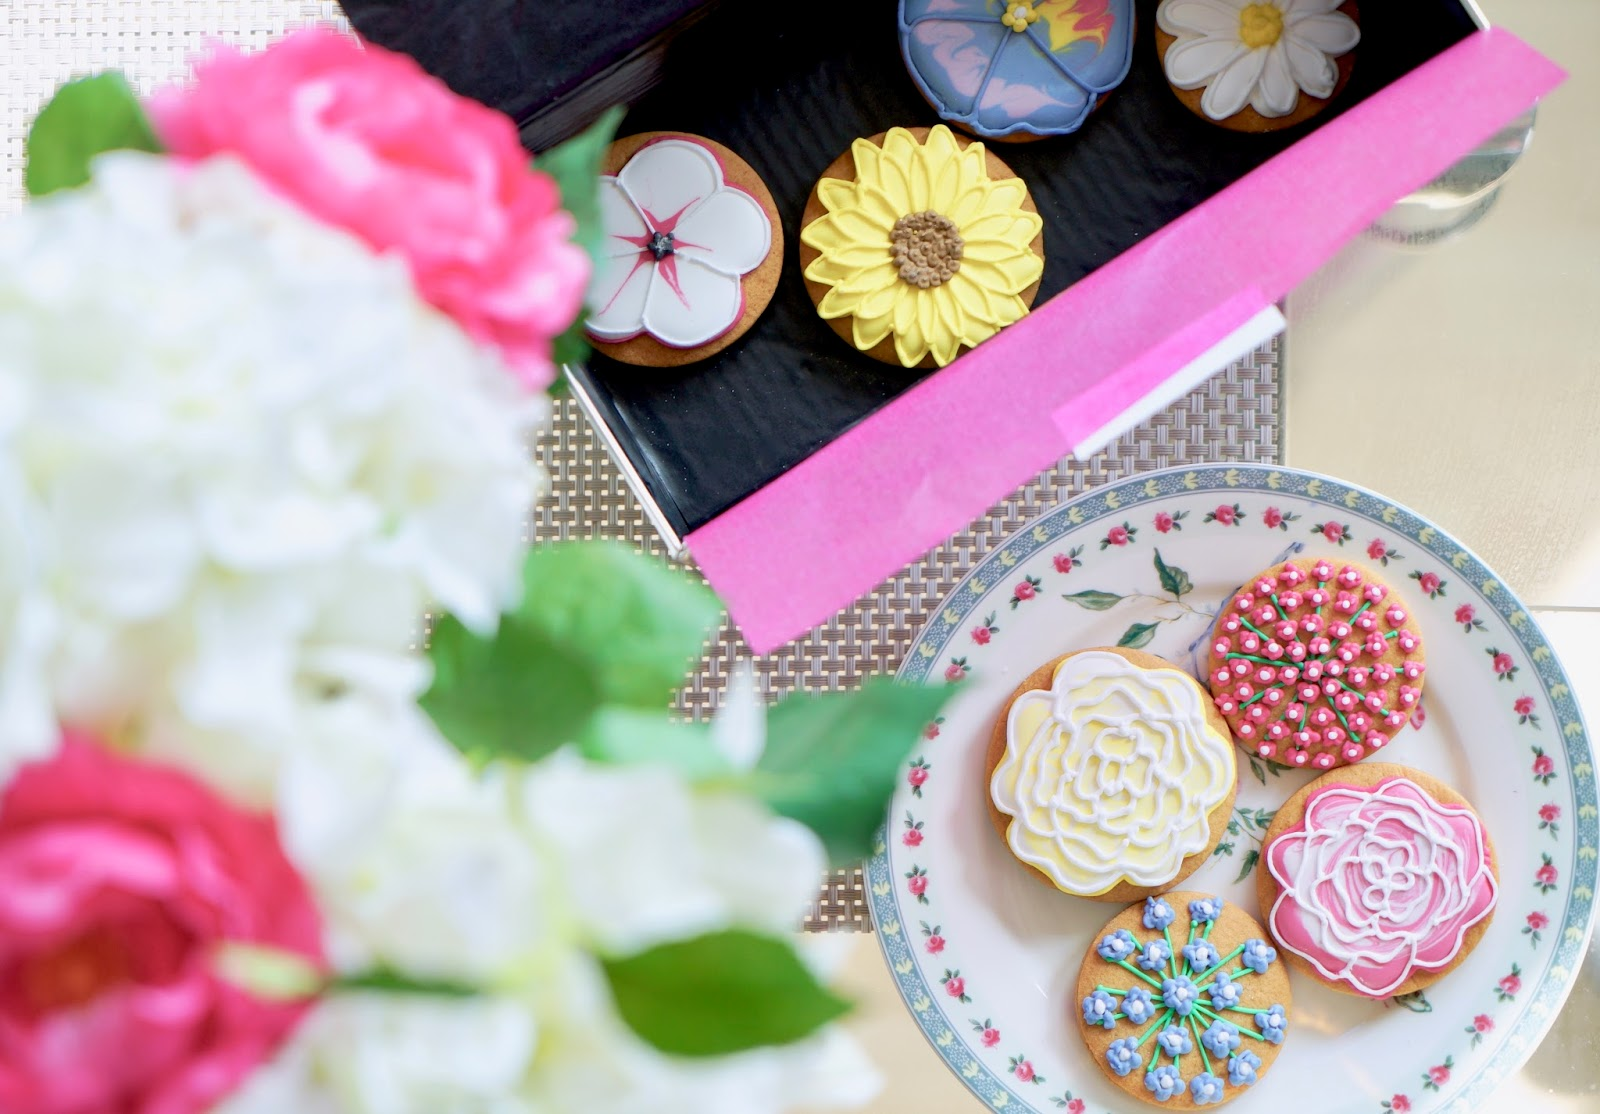 BISCUITEER'S HANDMADE BISCUITS FOR MOTHER'S DAY